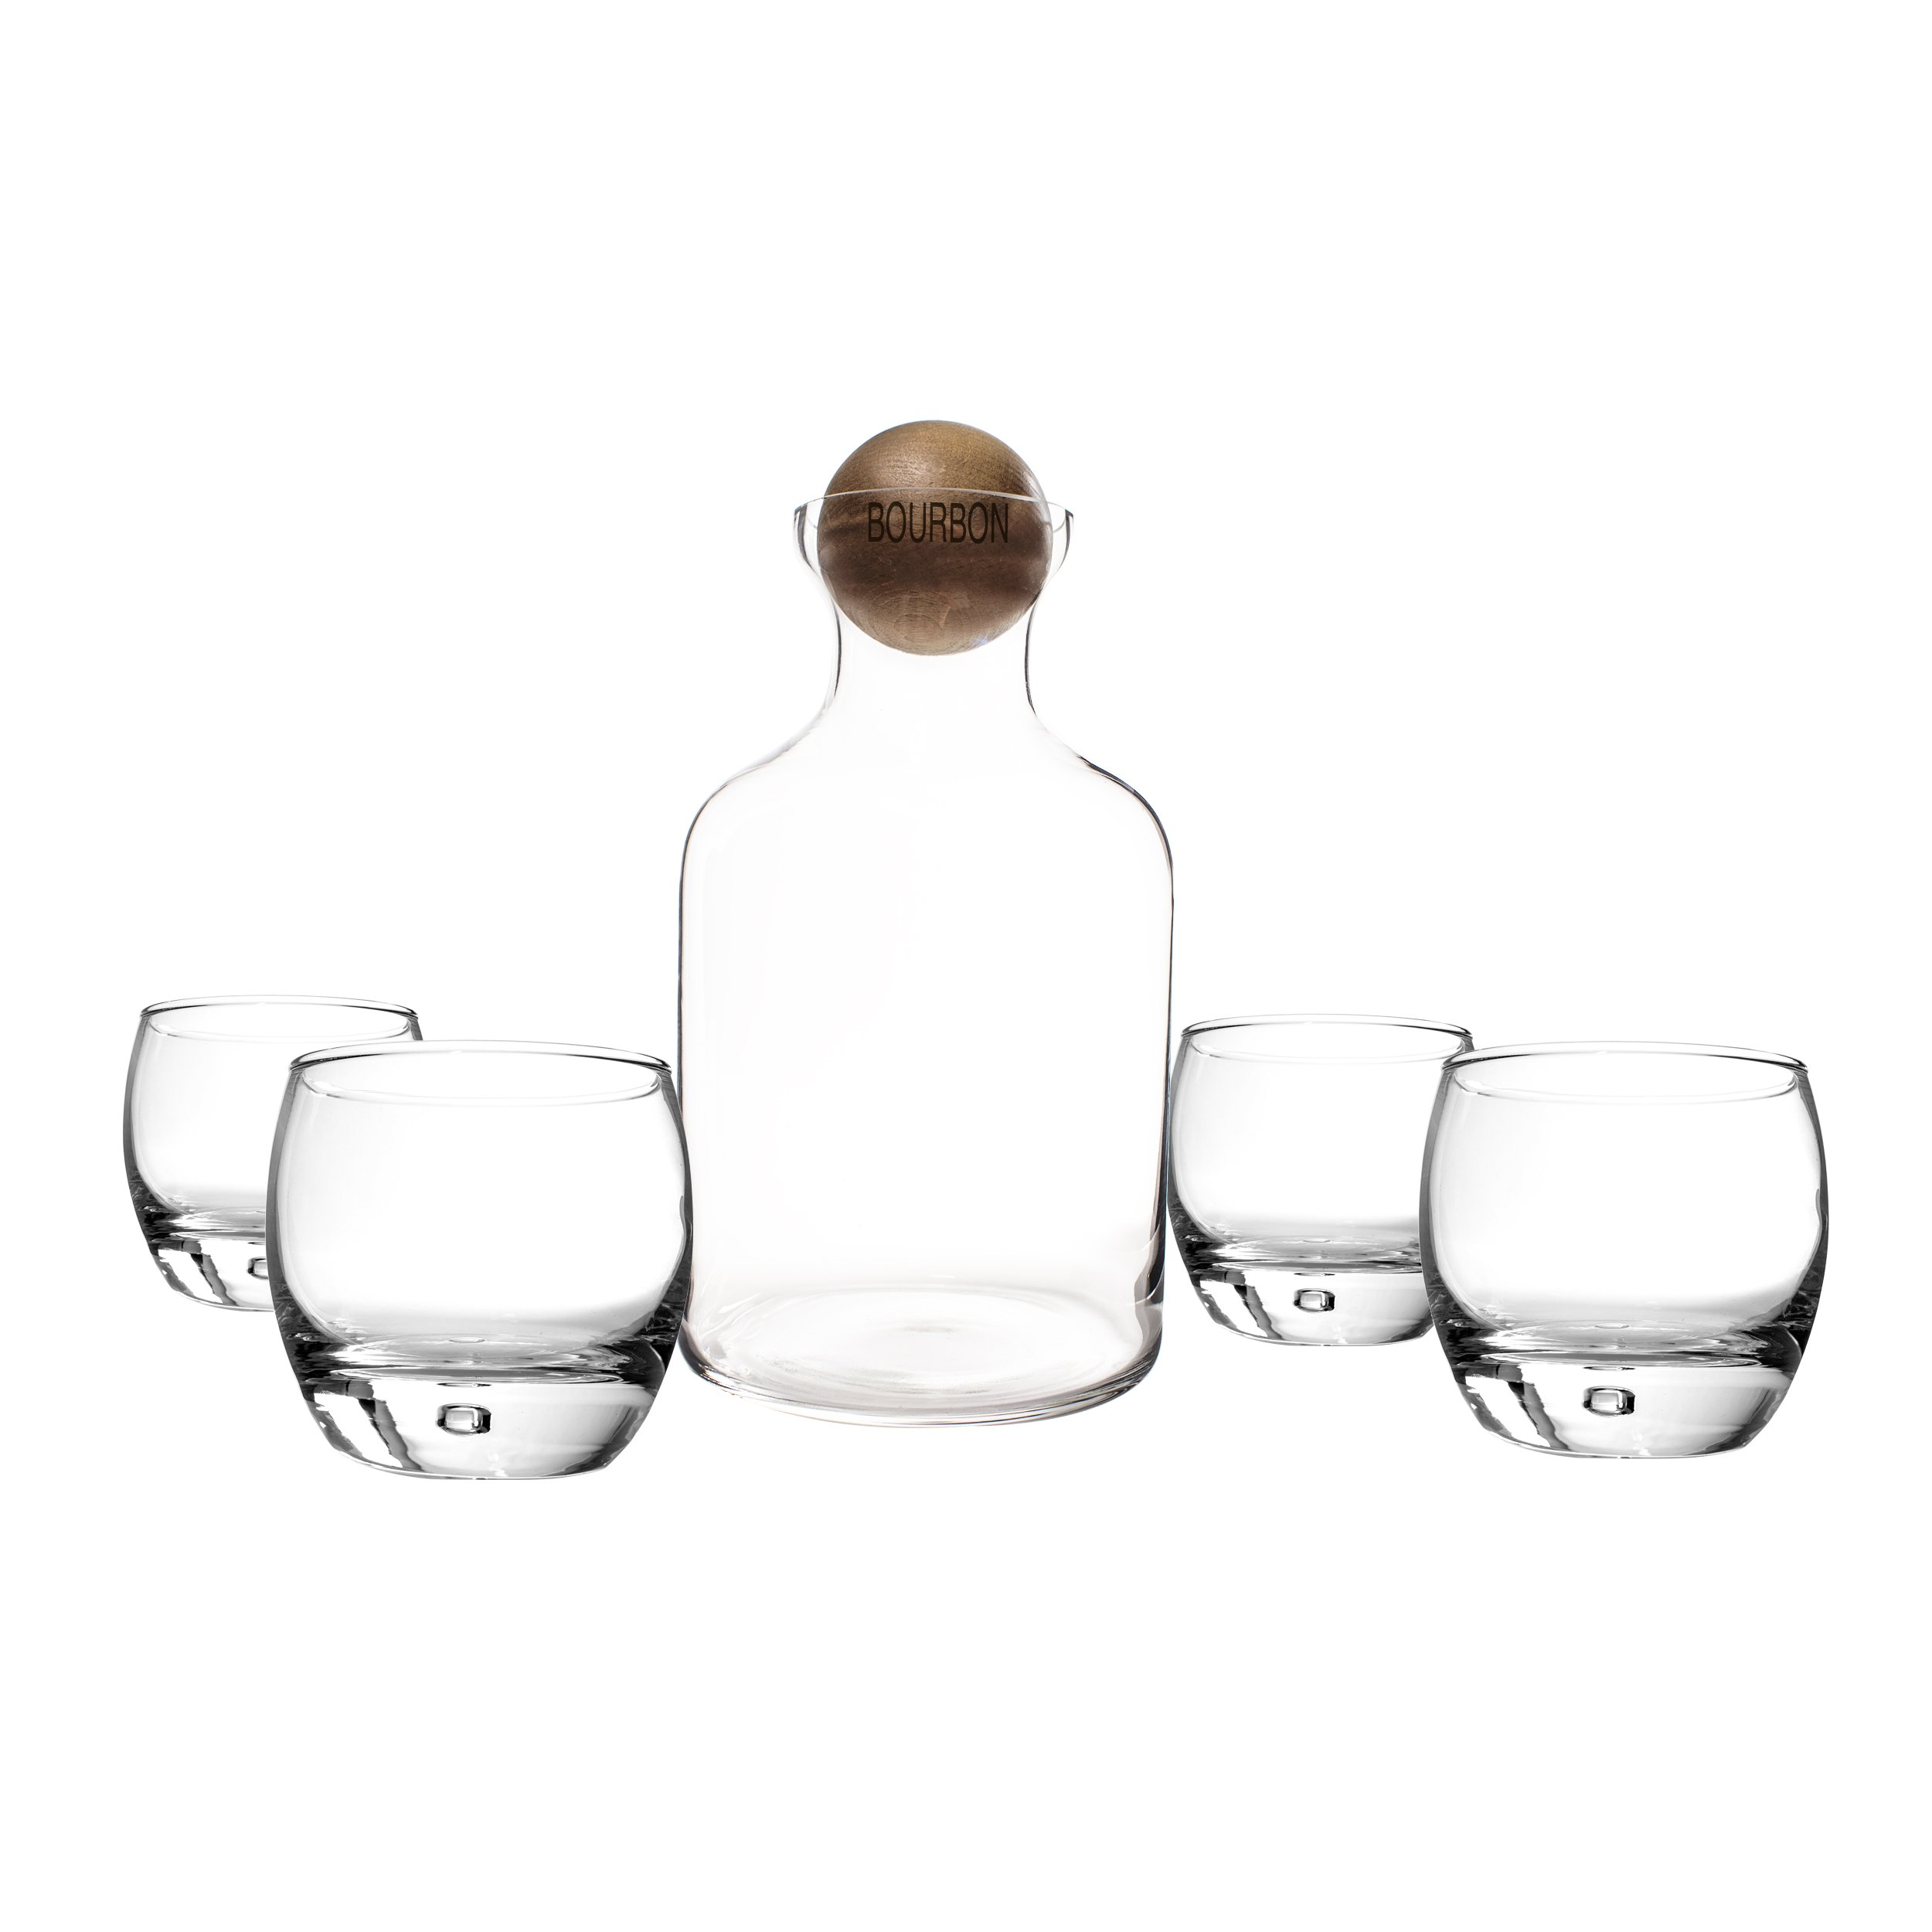 Cathy's Concepts Glass Liquor Decanter with Wood Stopper & Glasses Set, Bourbon by Cathy's Concepts